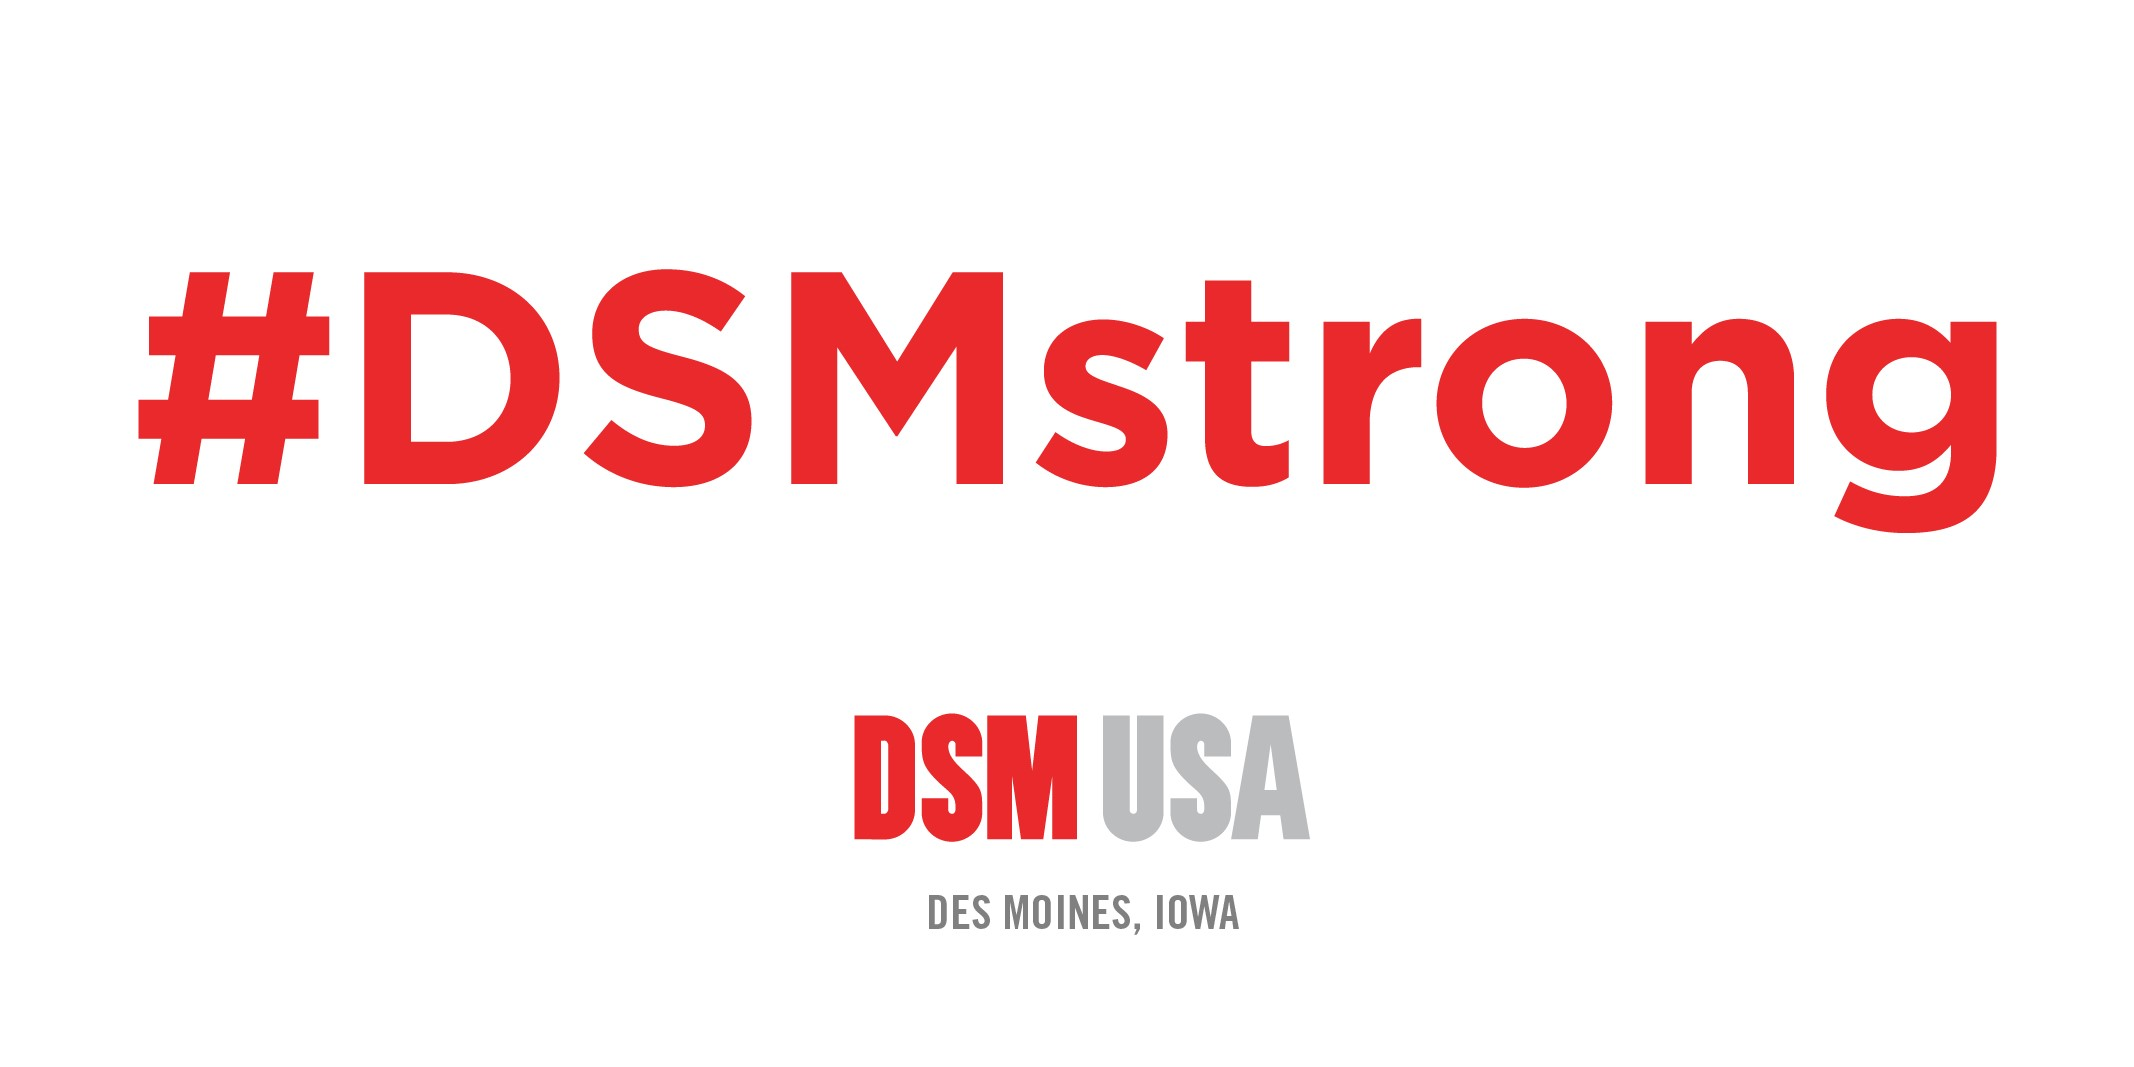 #DSMstrong